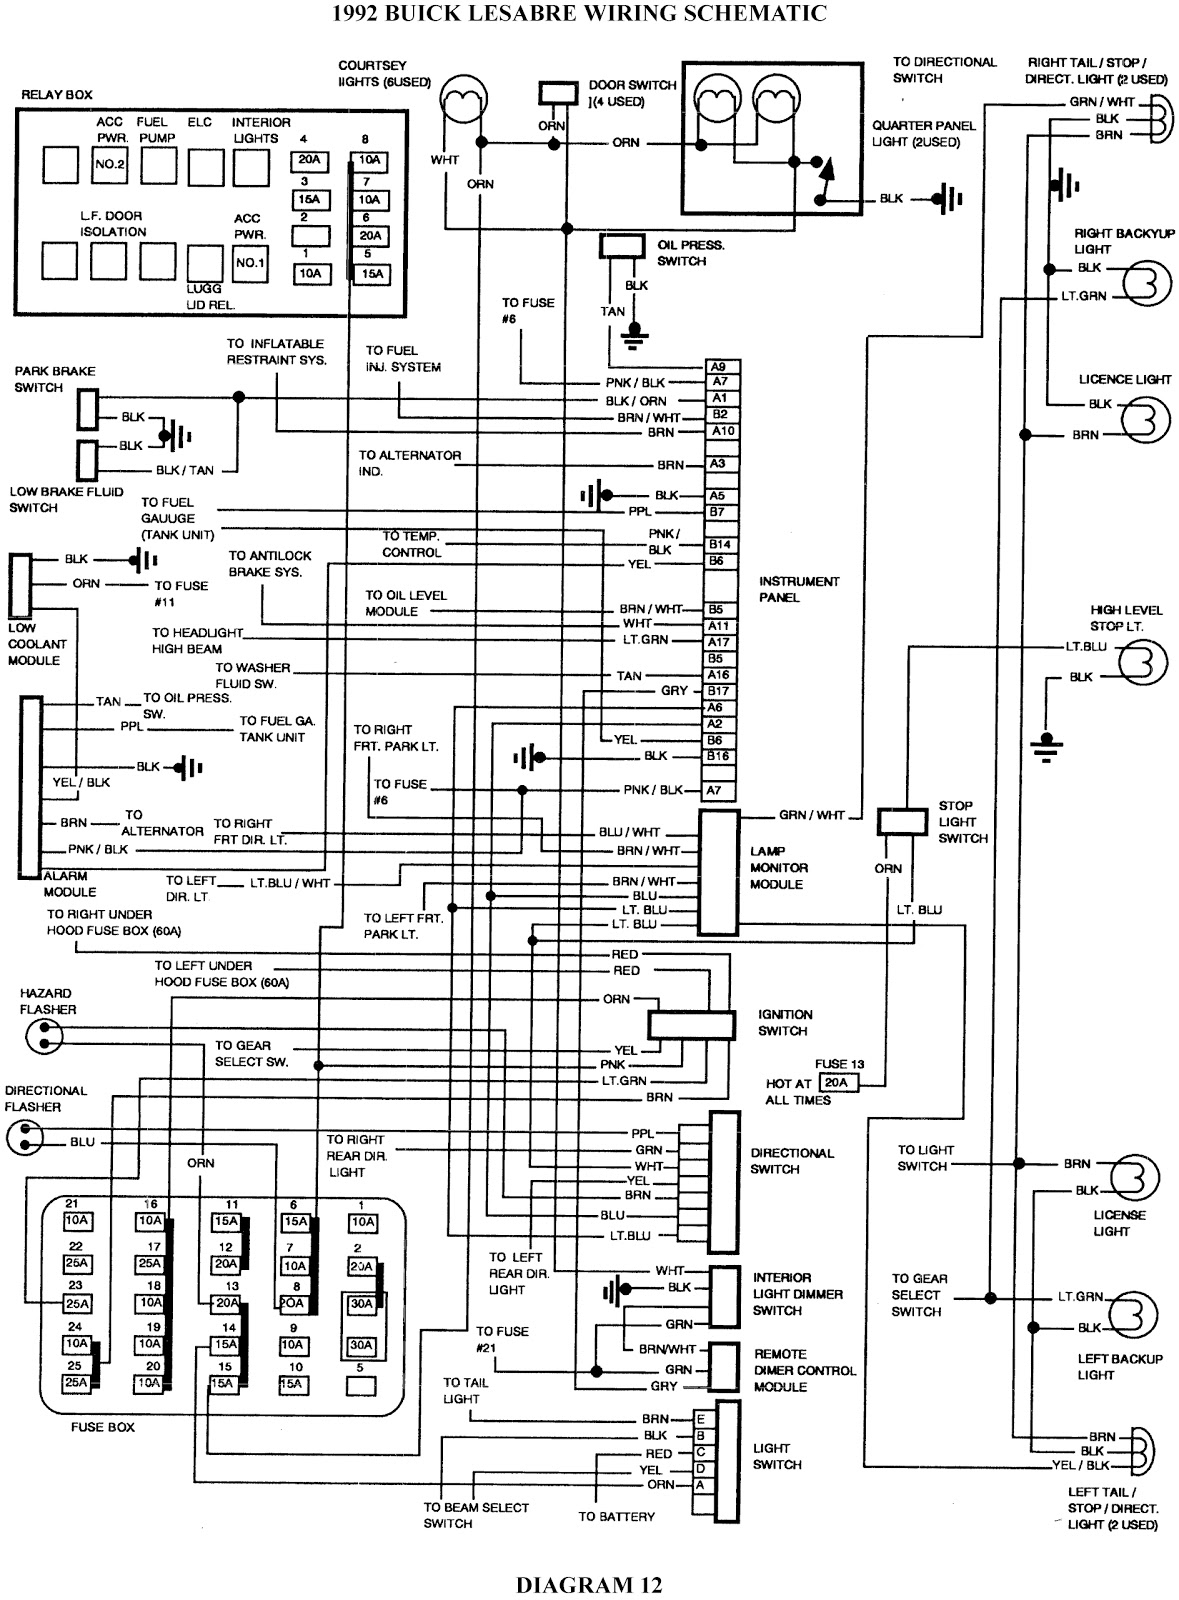 003 wiring diagram radio 92 cadillac eldorado yhgfdmuor net 3-Way Switch Wiring Diagram for Switch To at virtualis.co